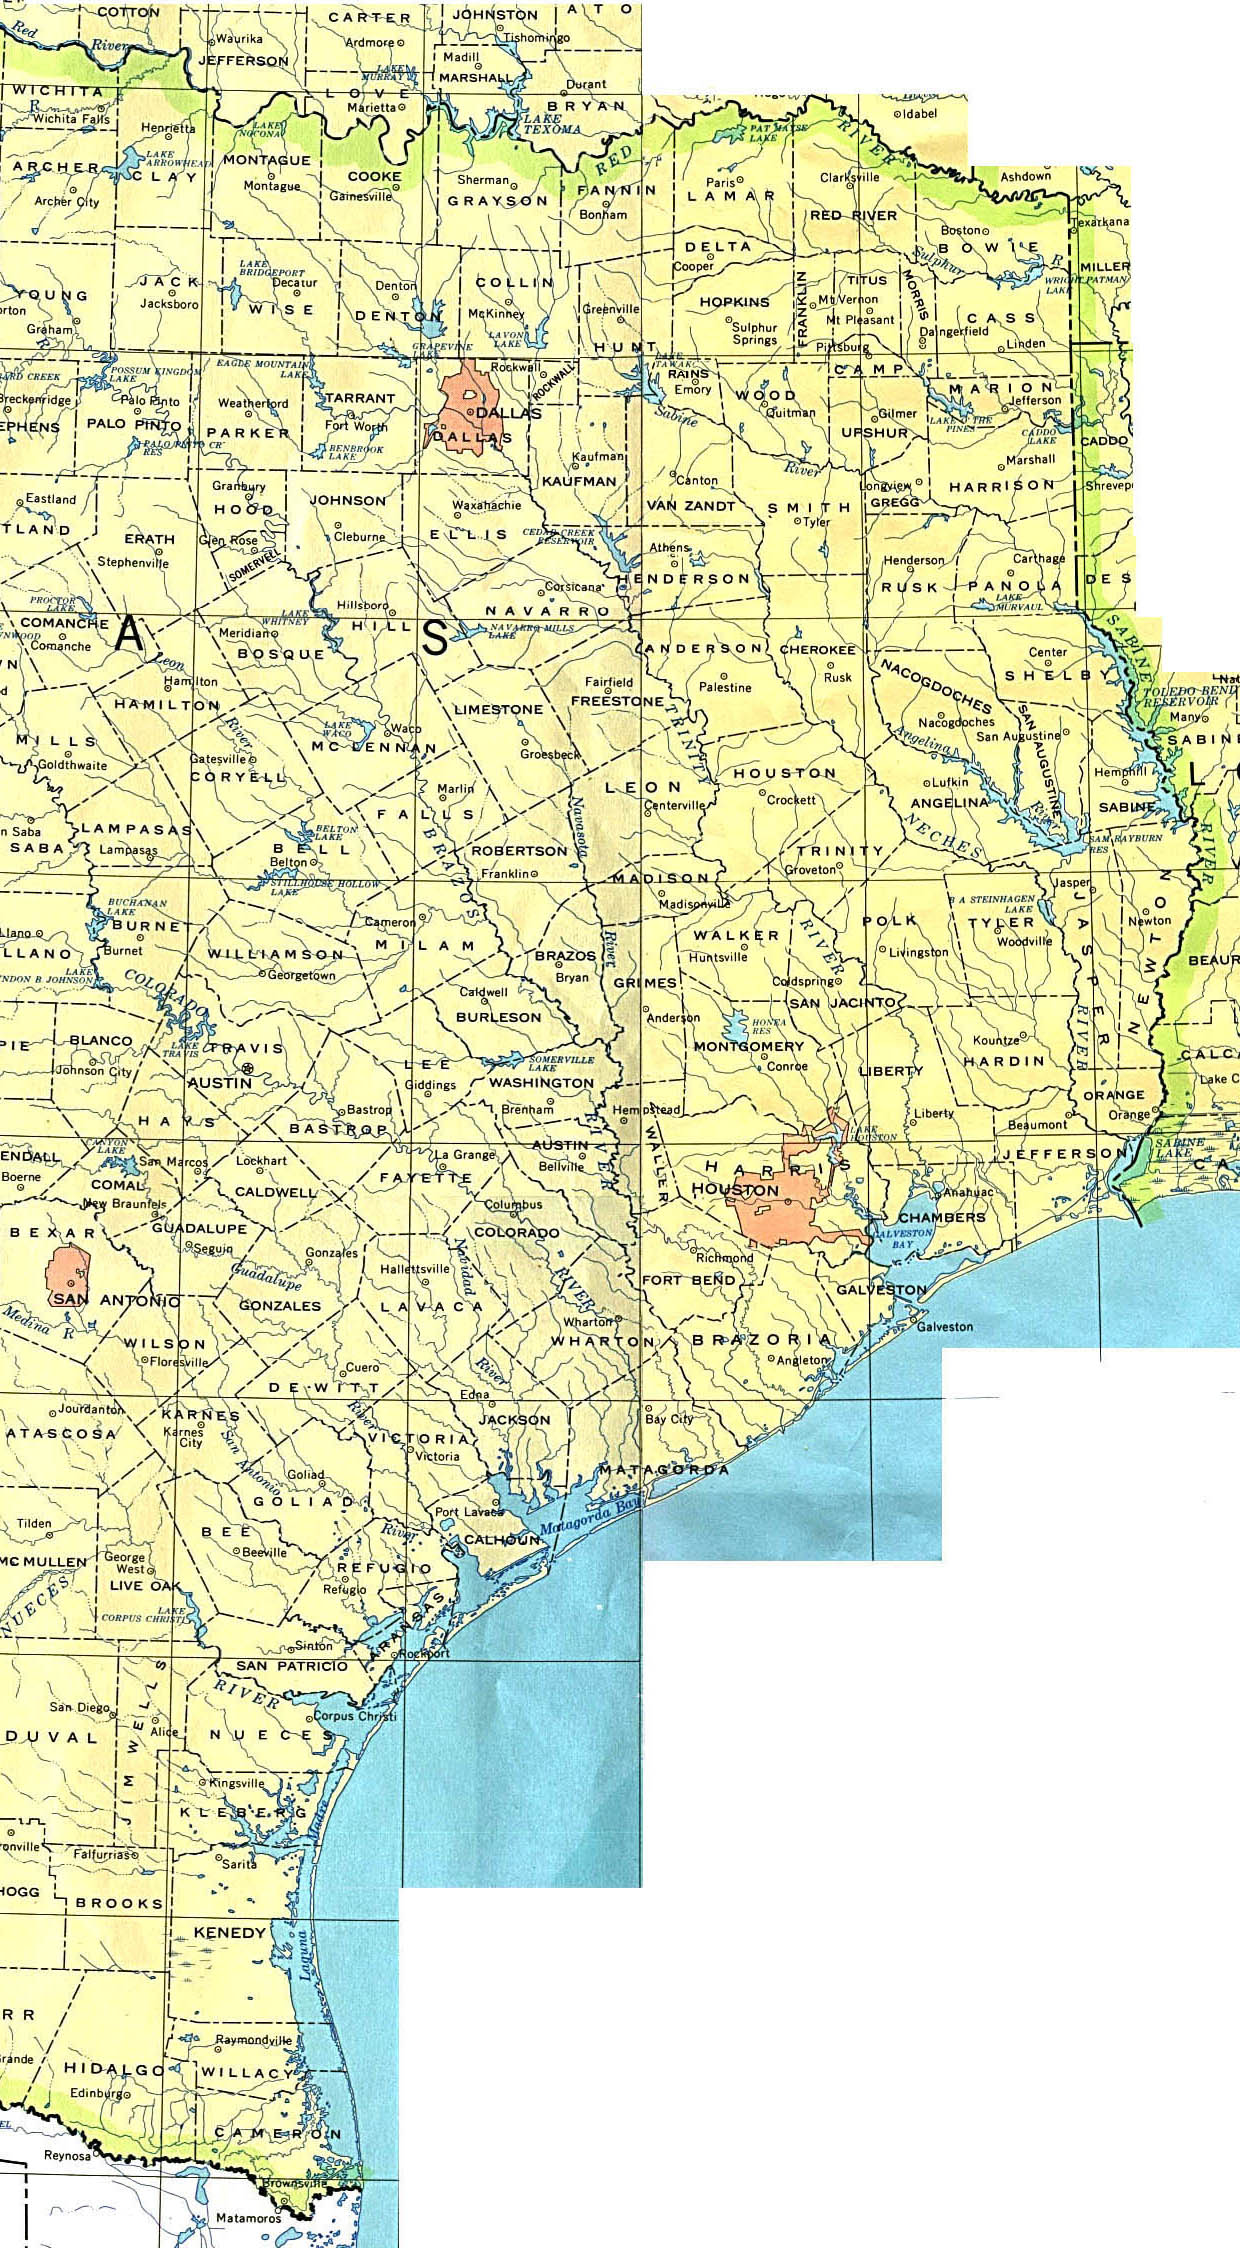 Dry Counties In Texas Map : counties, texas, Texas, Perry-Castañeda, Collection, Library, Online